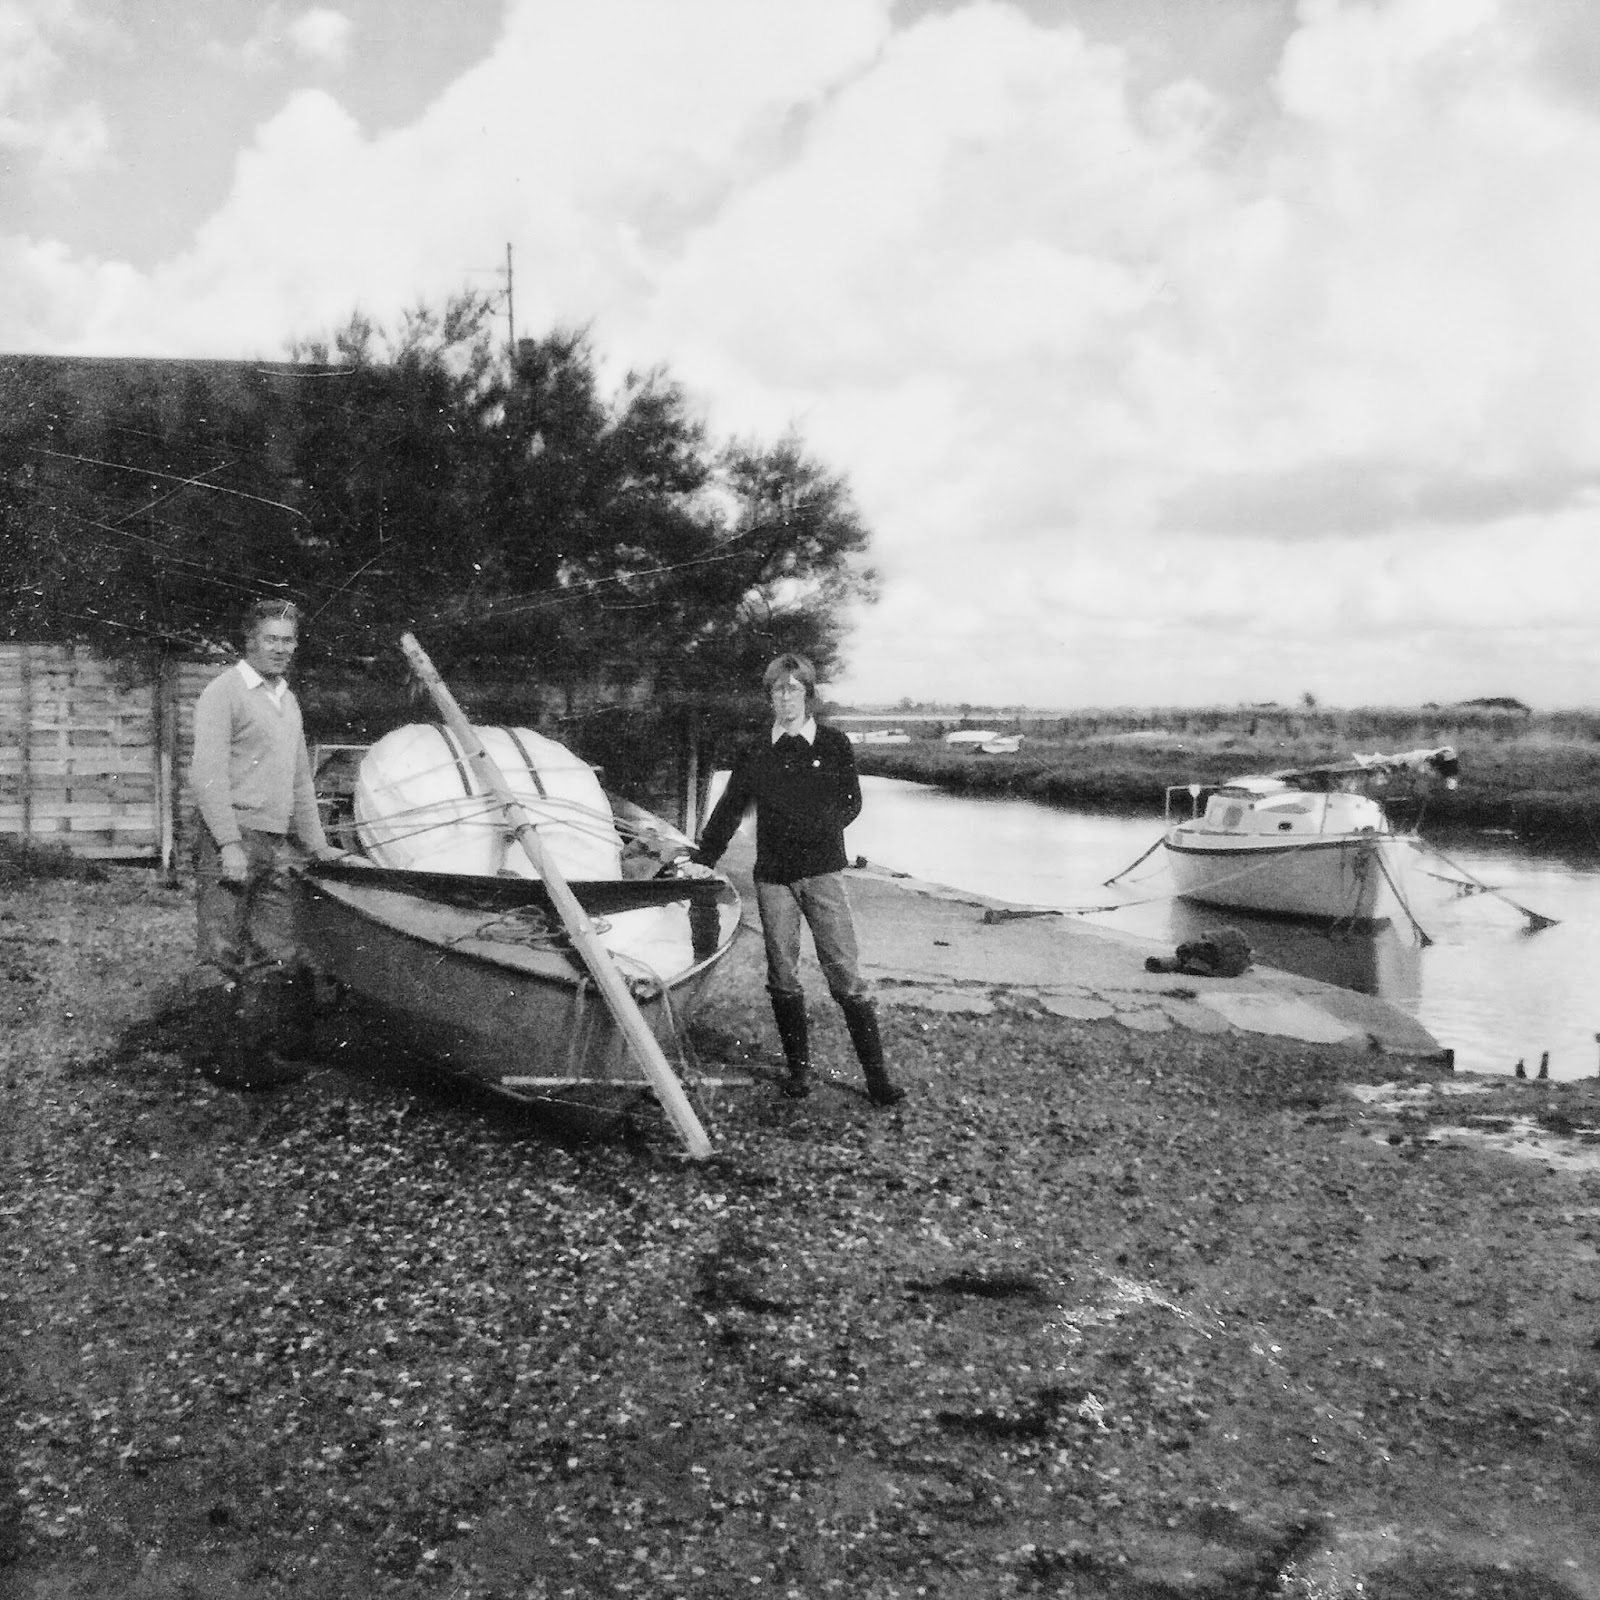 john cottee left and me at kirby quay c 1982